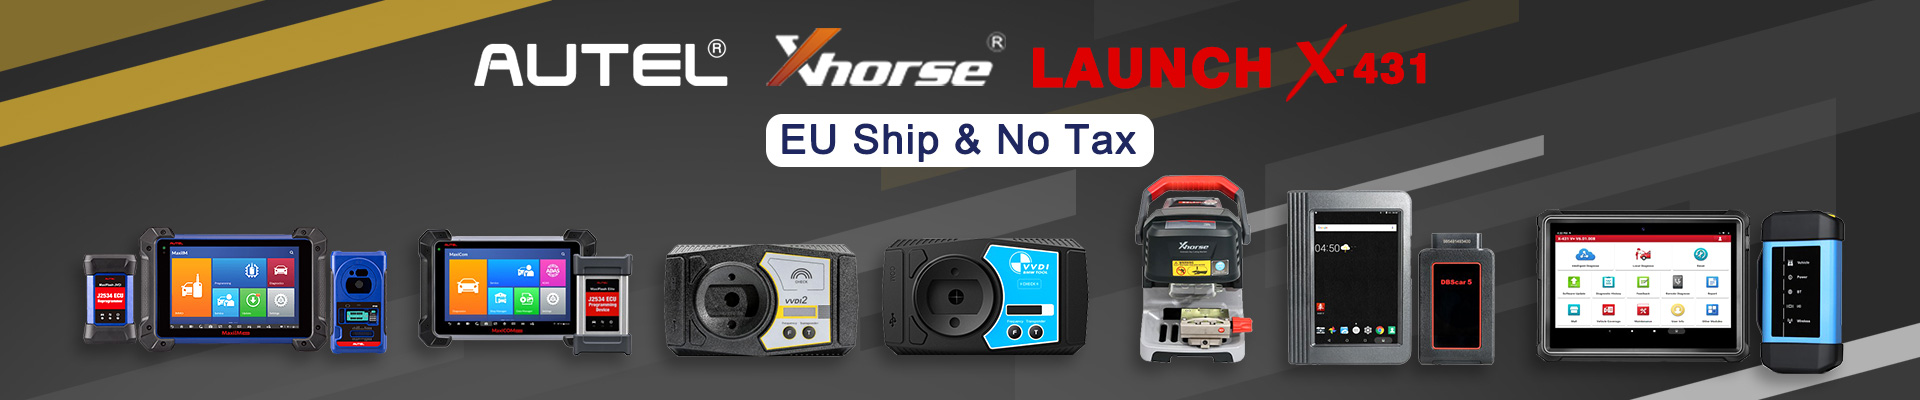 Hot Sales on Autel and Xhorse and Launch, Fast EU Ship & No Tax